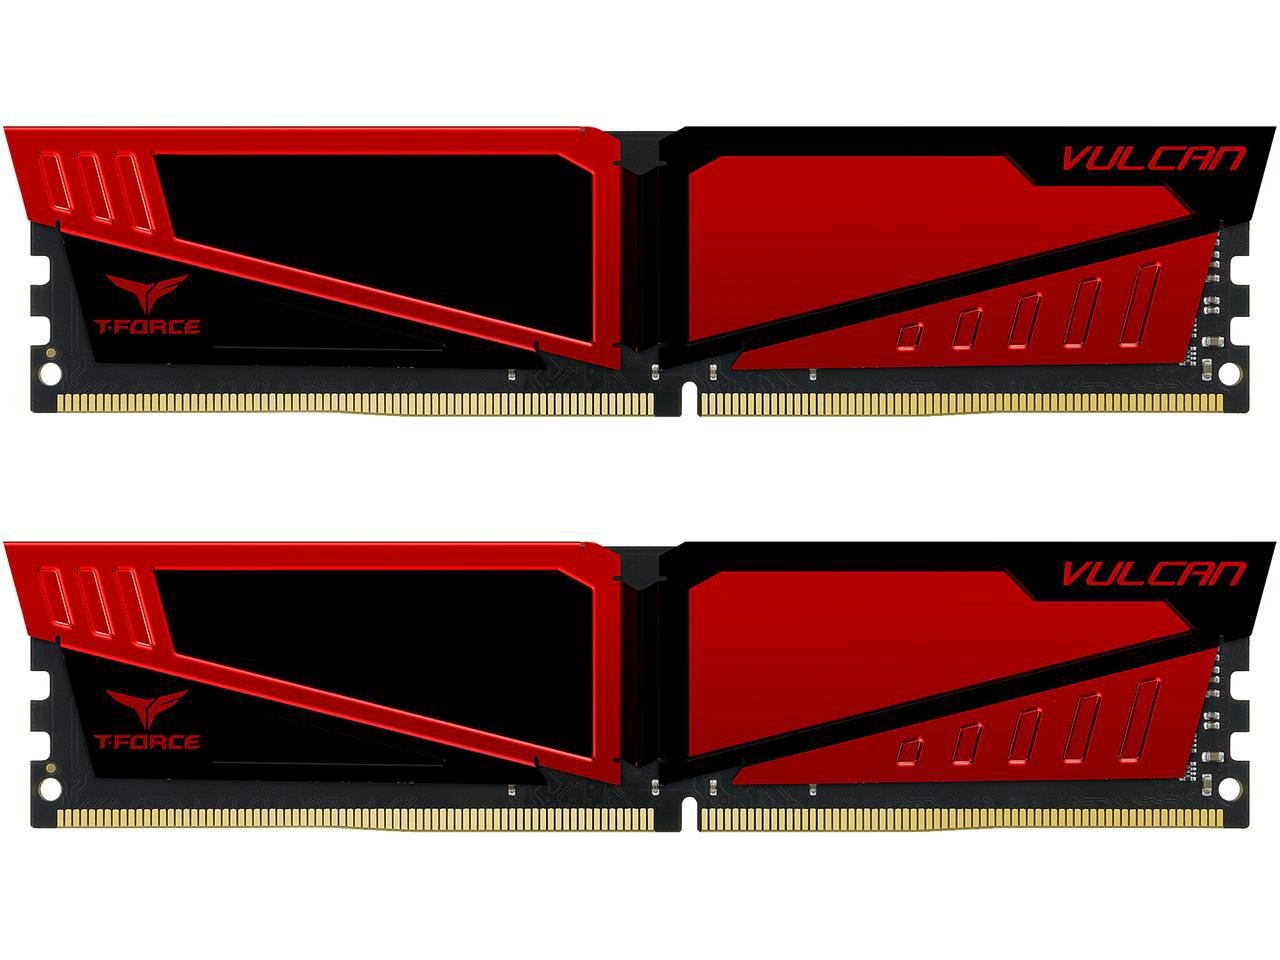 Team Group Vulcan DDR4-2400 16GB 16Go DDR4 2400MHz module de mémoire - Modules de mémoire (16 Go, 2 x 8 Go, DDR4, 2400 MHz, 288-pin DIMM, Rouge)